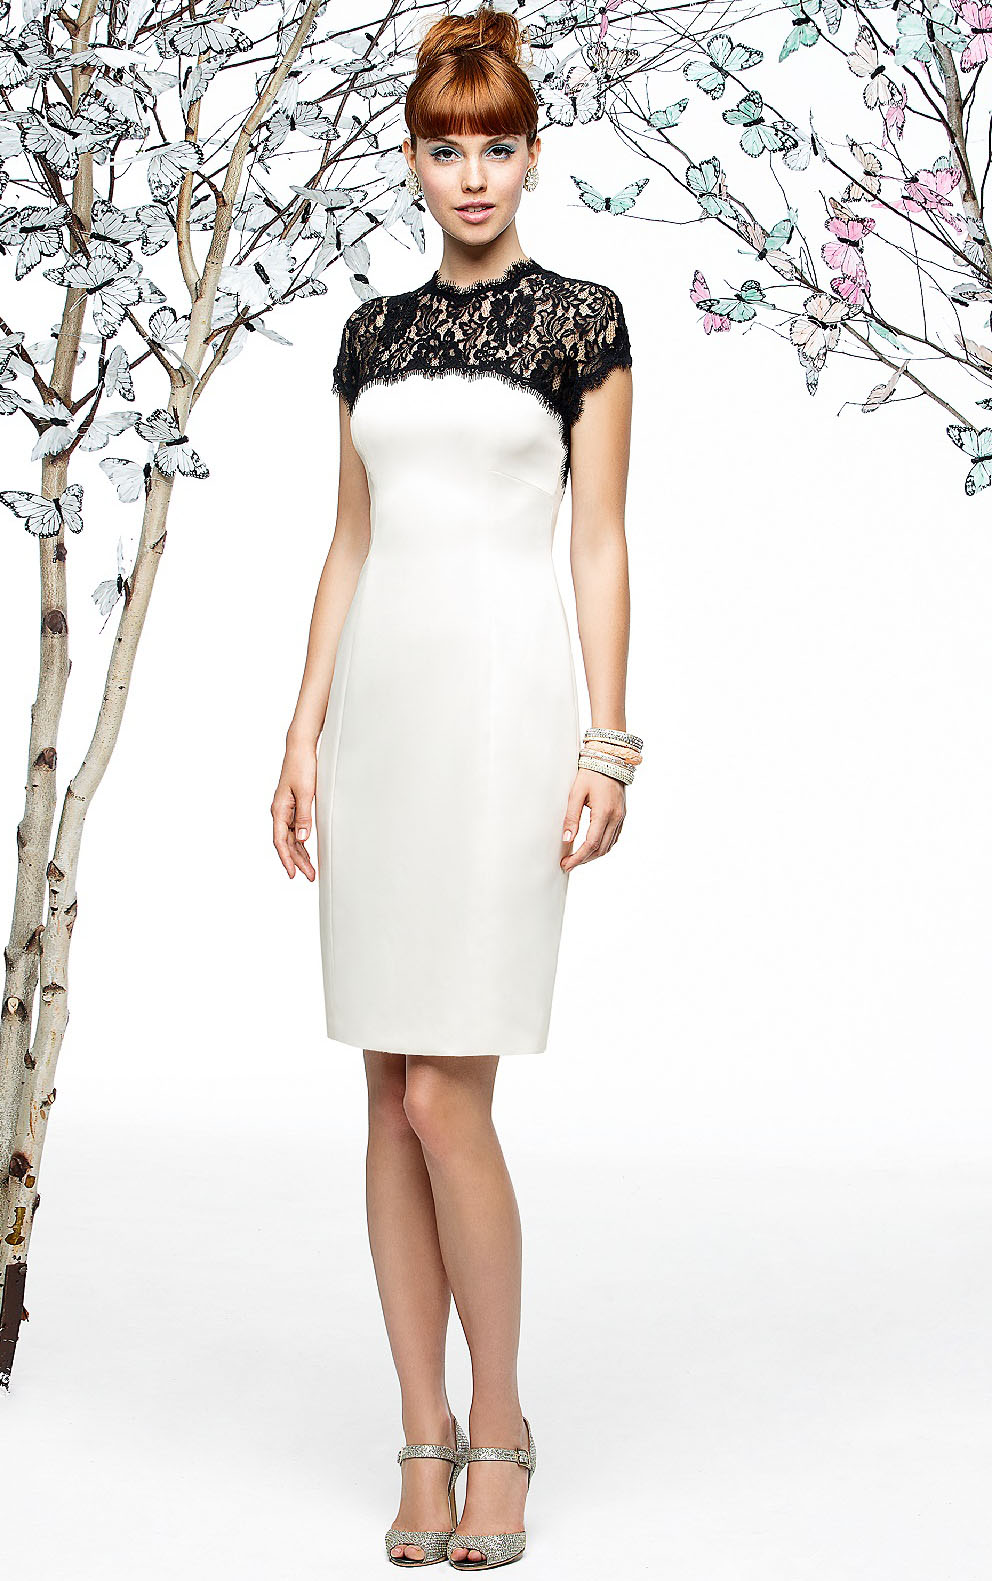 http://www.aislestyle.co.uk/zipper-jewel-cap-sleeves-empire-short-bridesmaid-dresses-p-5142.html